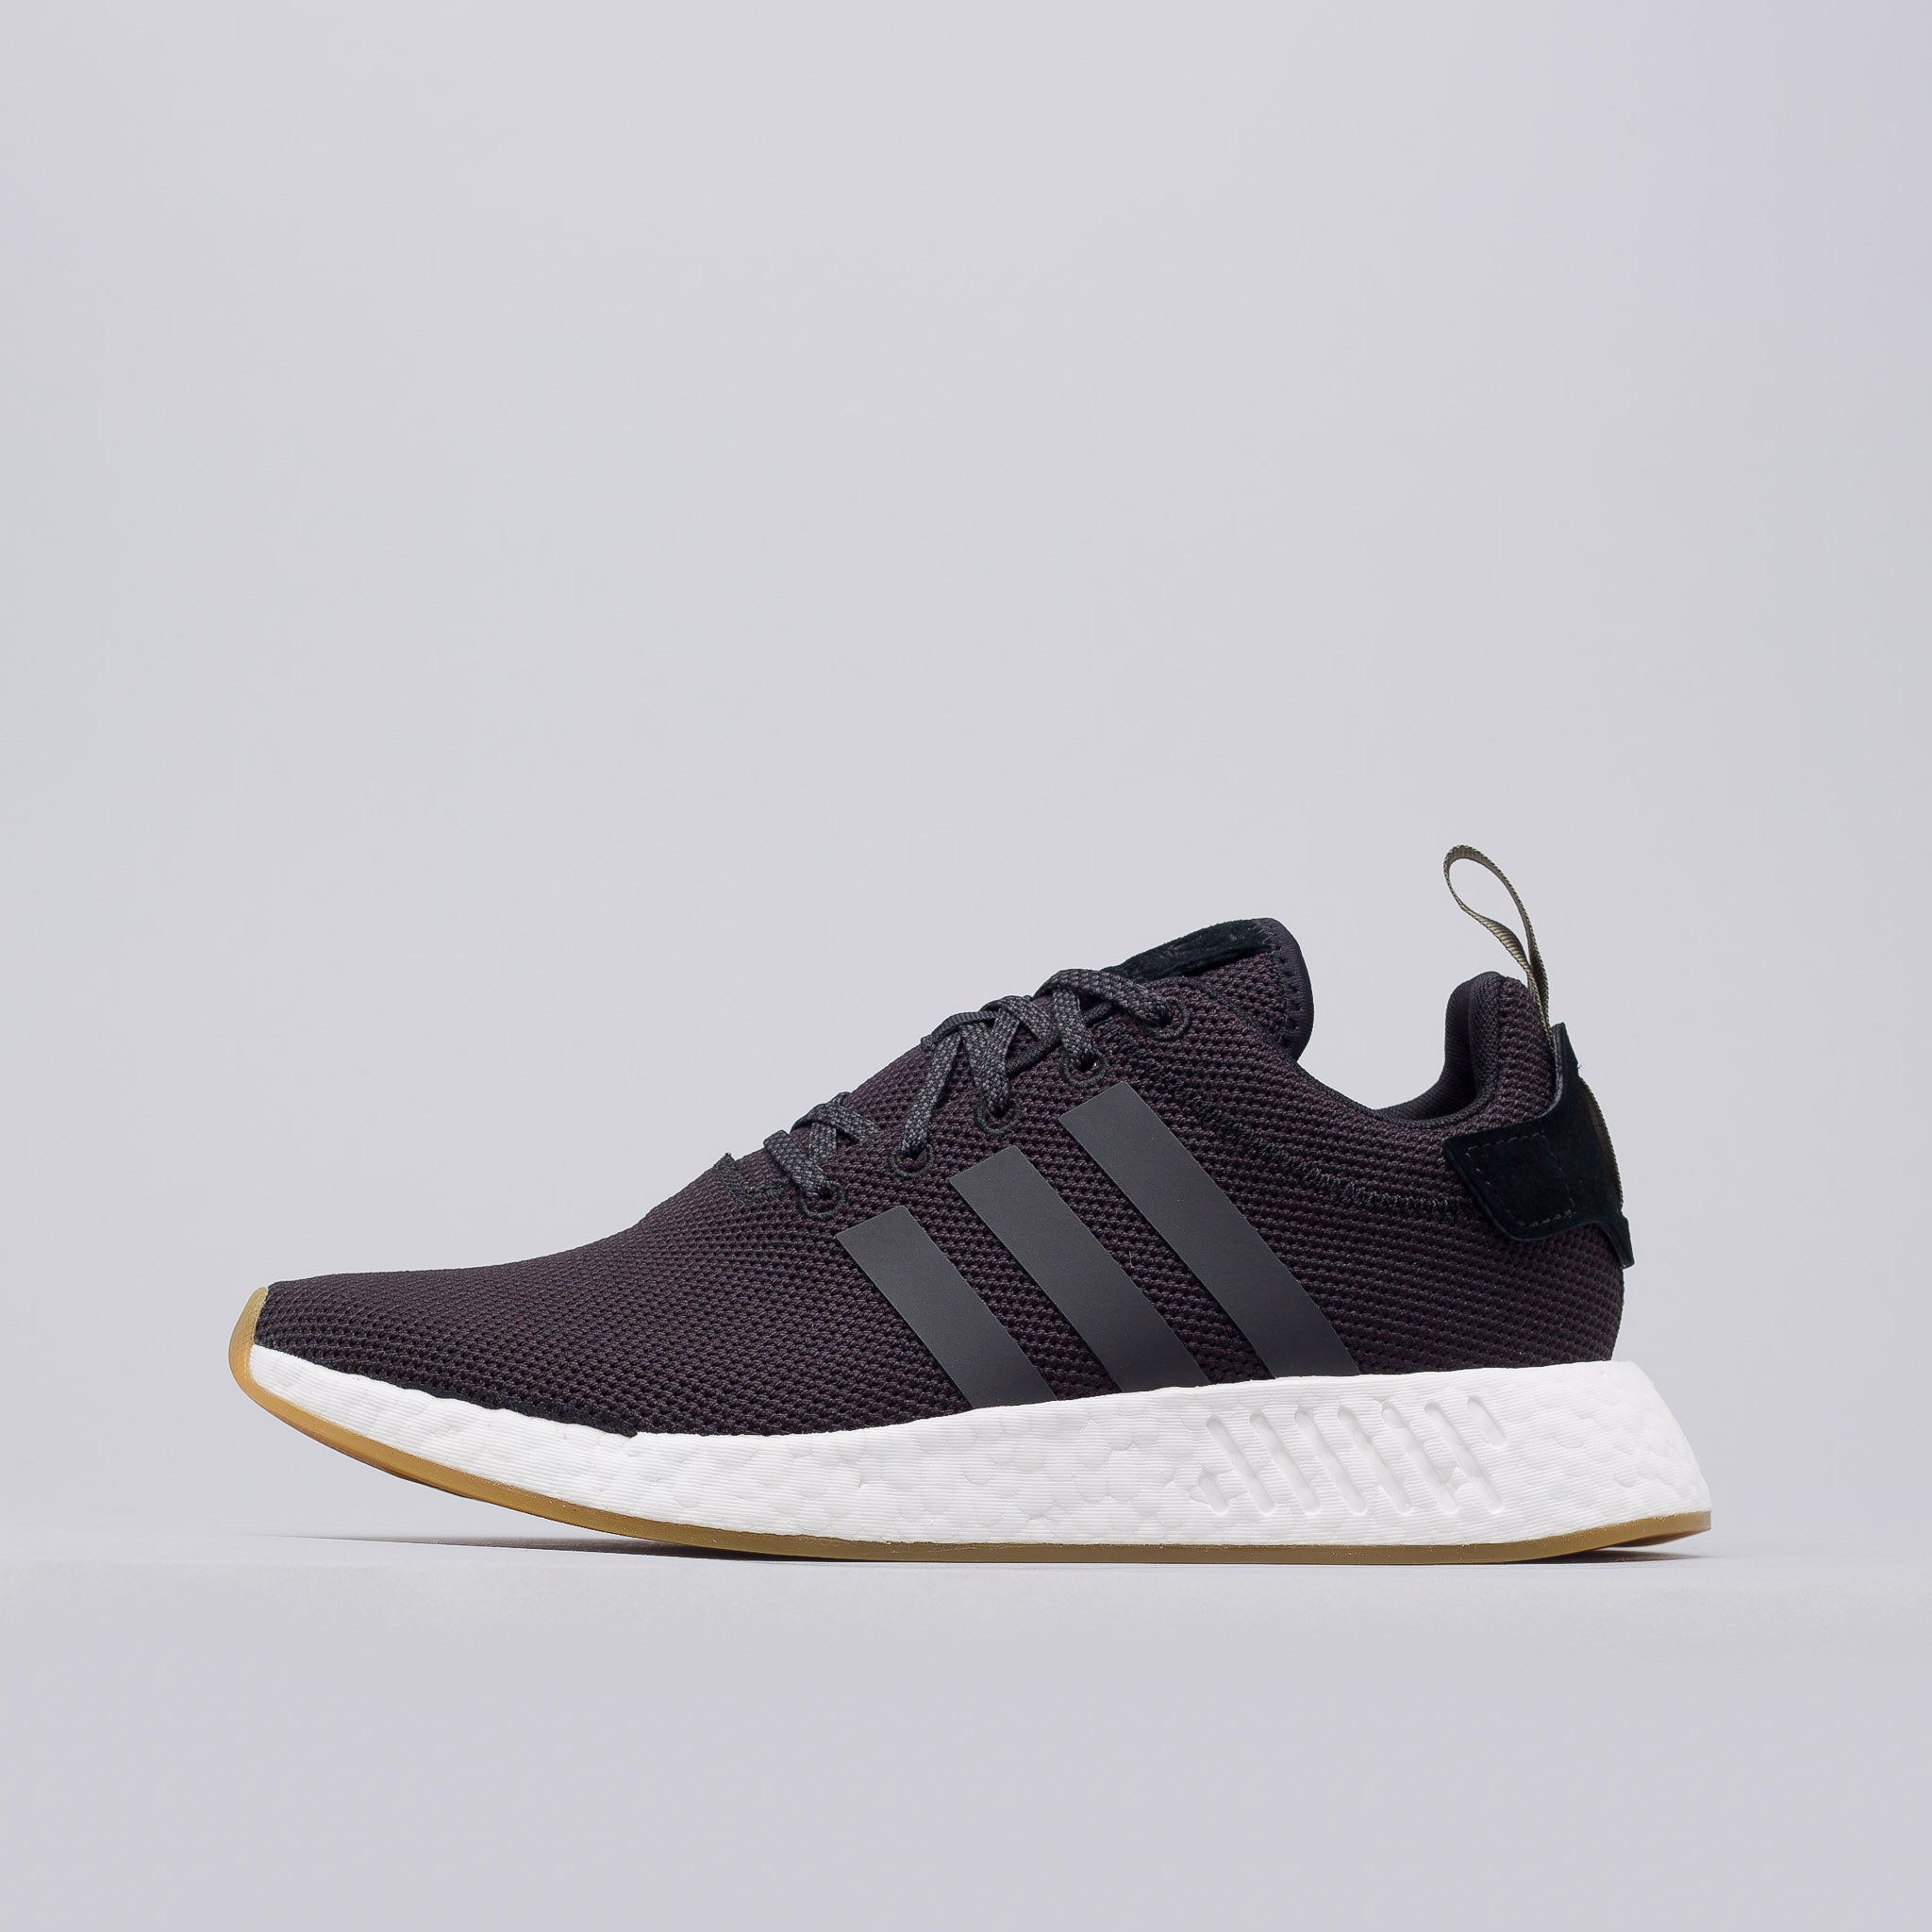 adidas Originals NMD_R1 W PK Trainers core black/clear onix